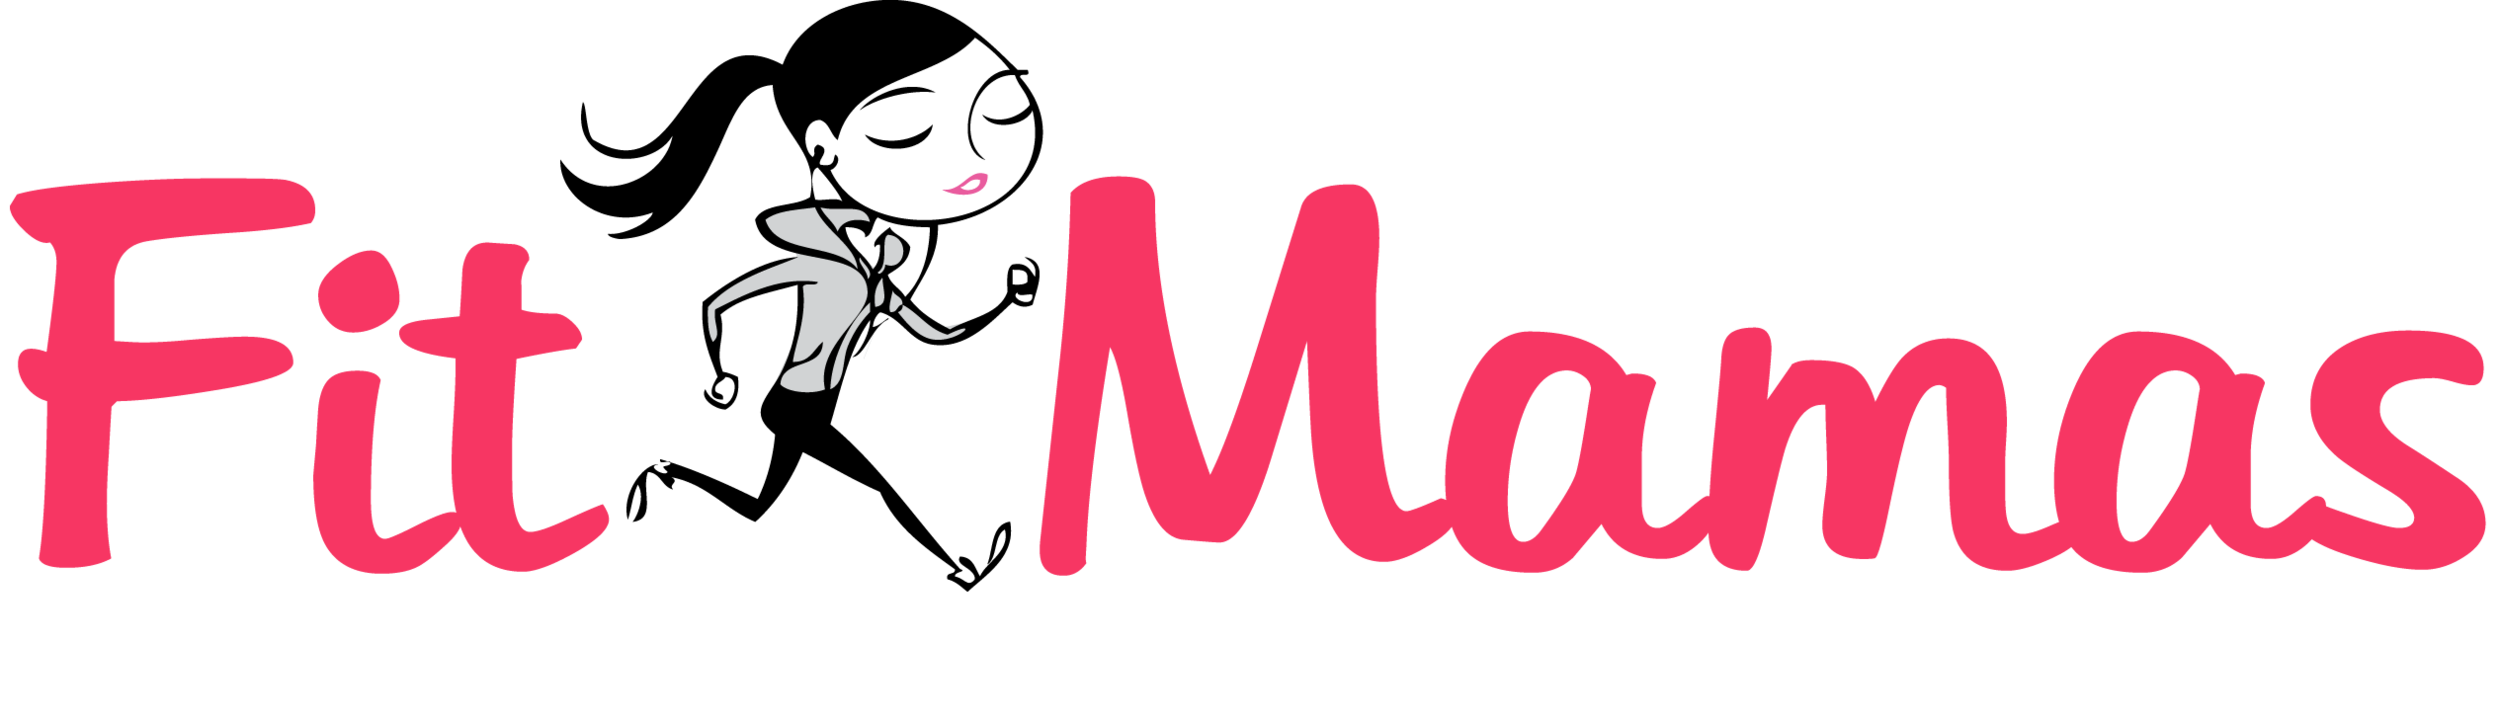 Fit Mama final logo.png